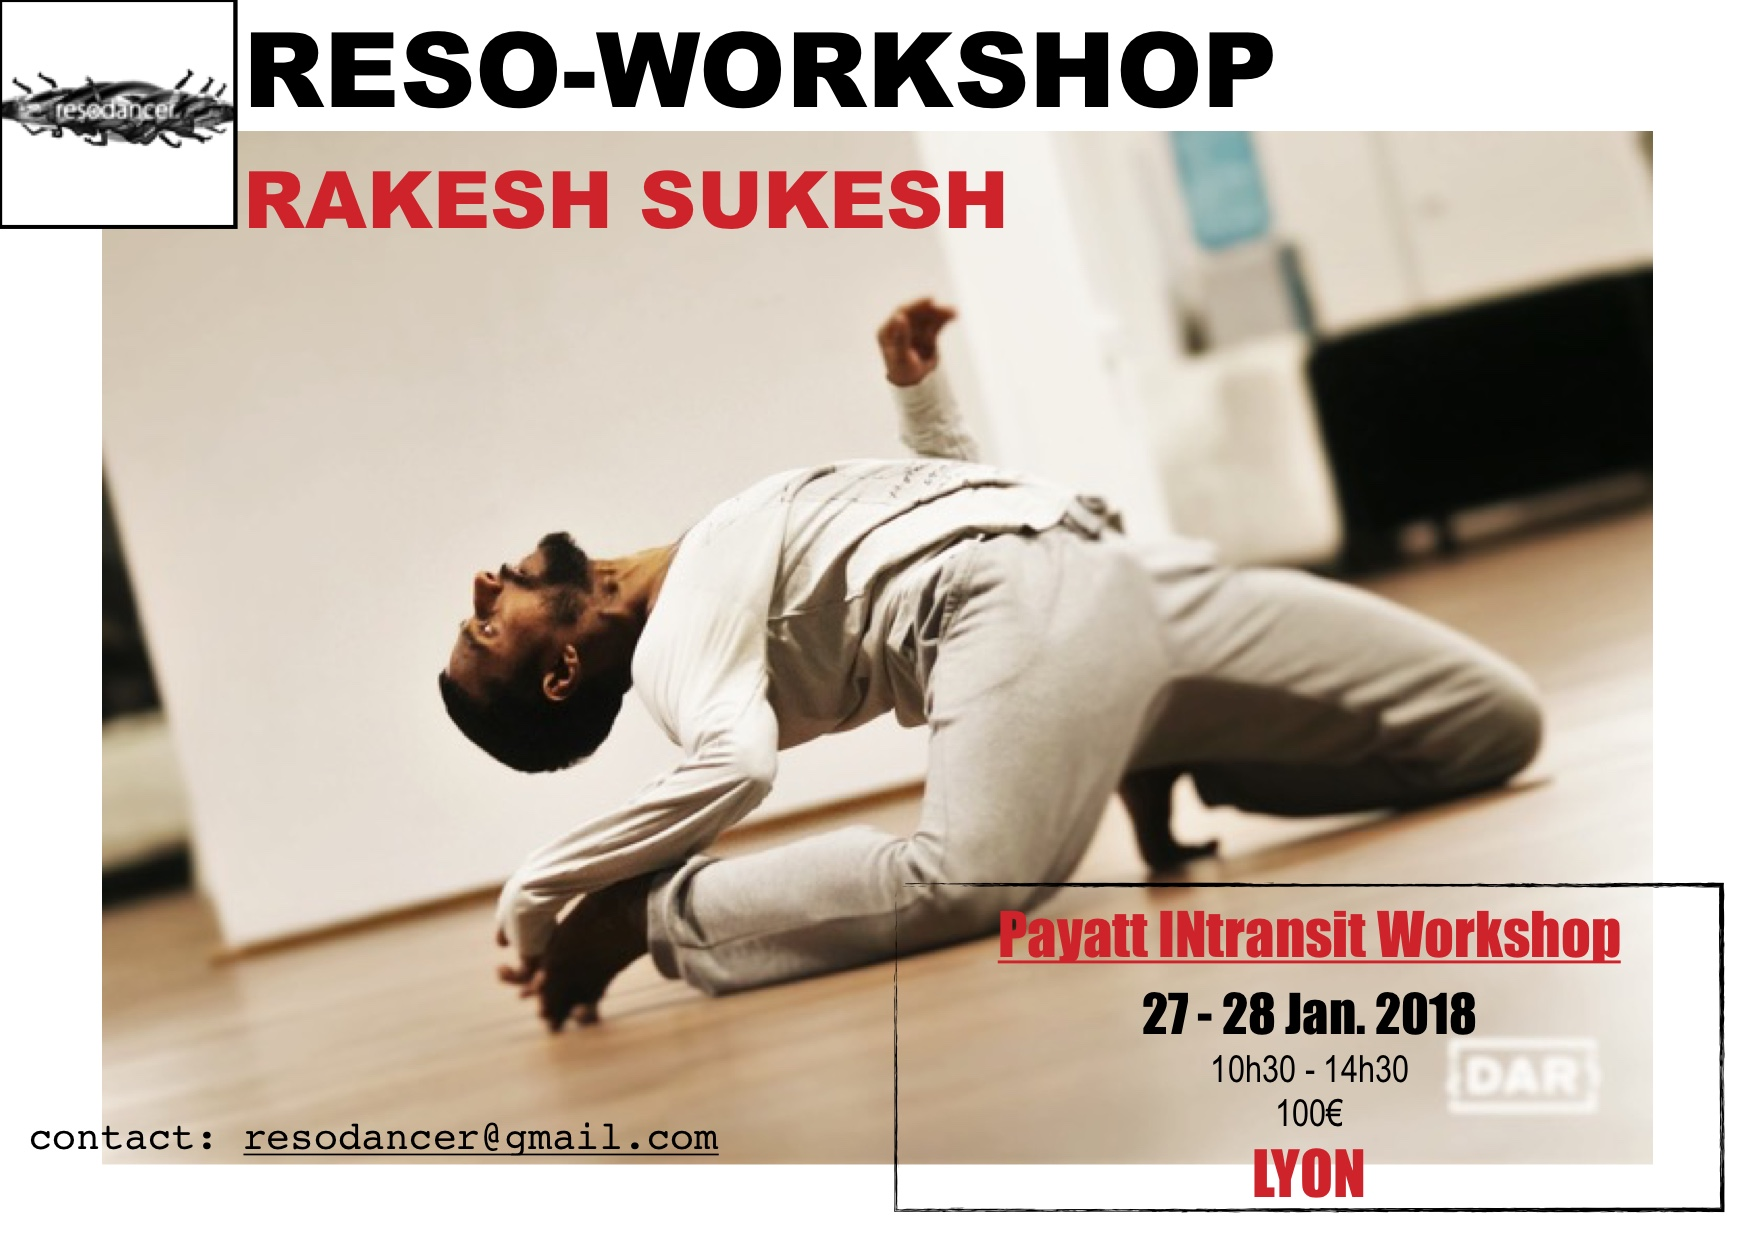 Reso-Workshop Rakesh Sukesh 27 > 28 Jan.